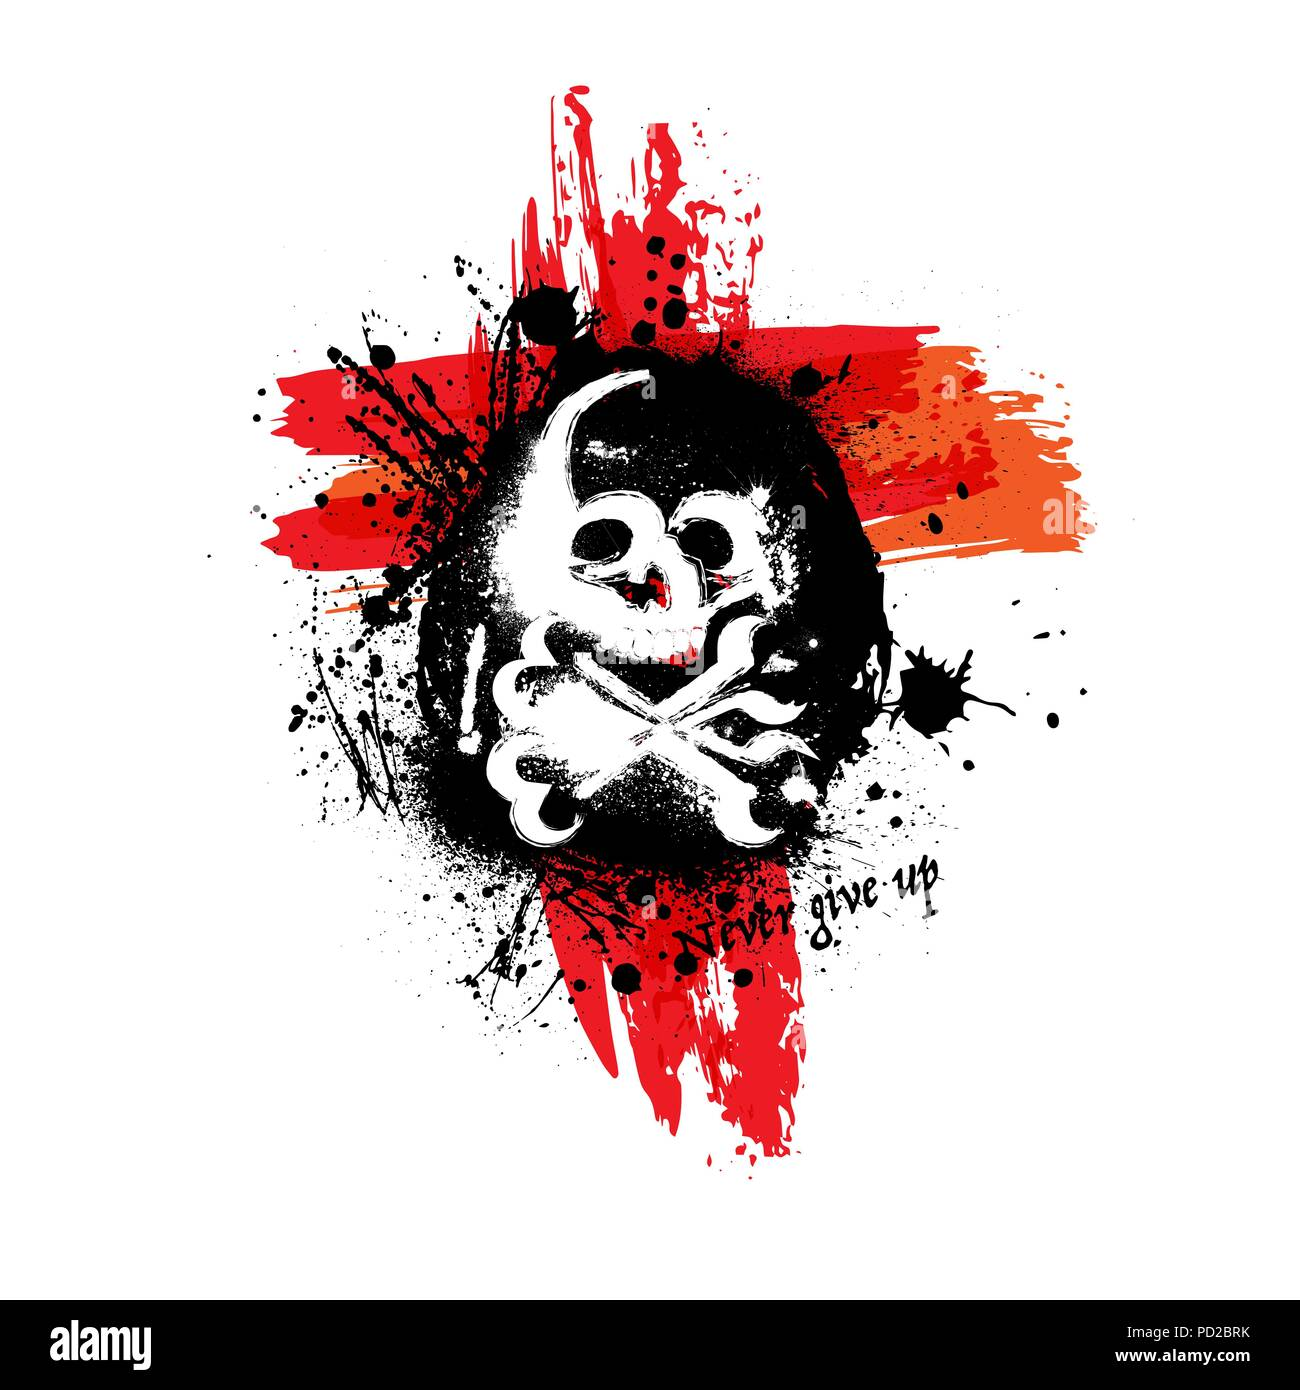 Black grunge silhouette of skull with bones and different grunge ink blots - Stock Vector